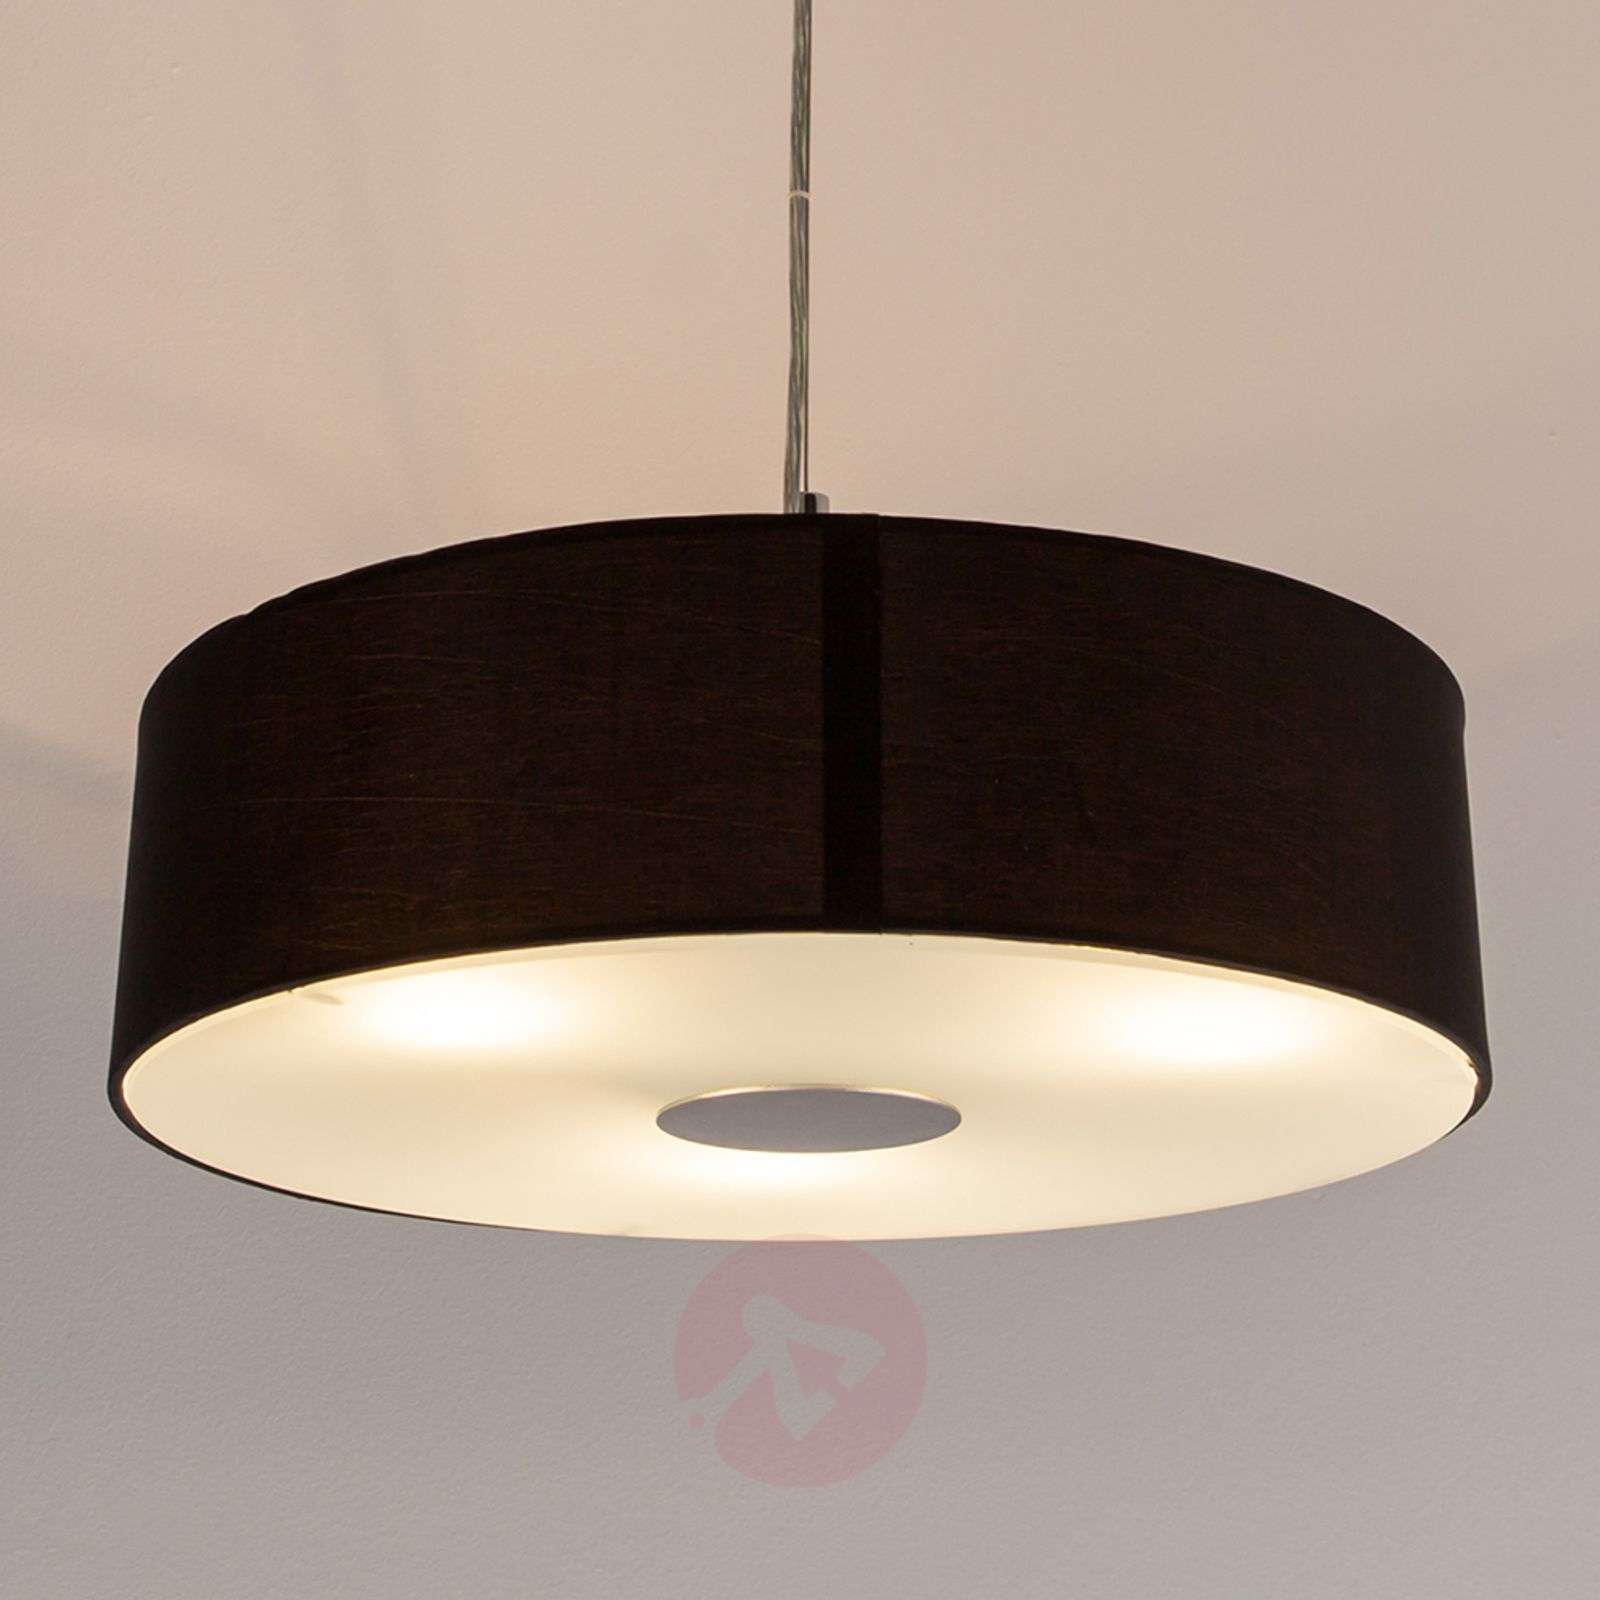 Black pendant light gabriella lights mozeypictures Image collections